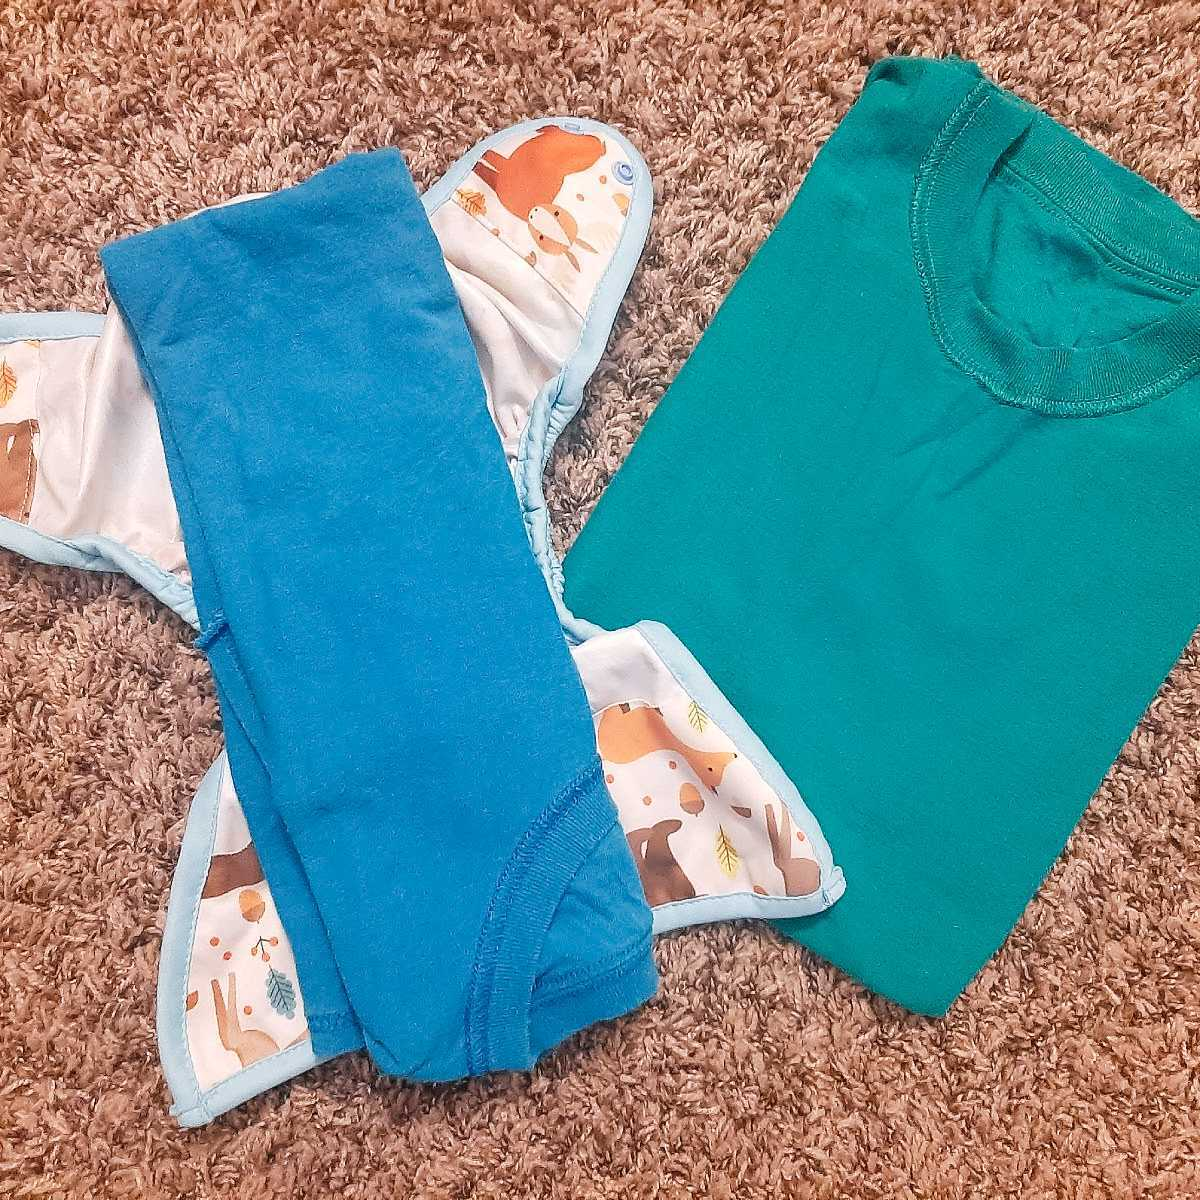 cut up one old tshirt to make cloth wipes - DIY Budget EC